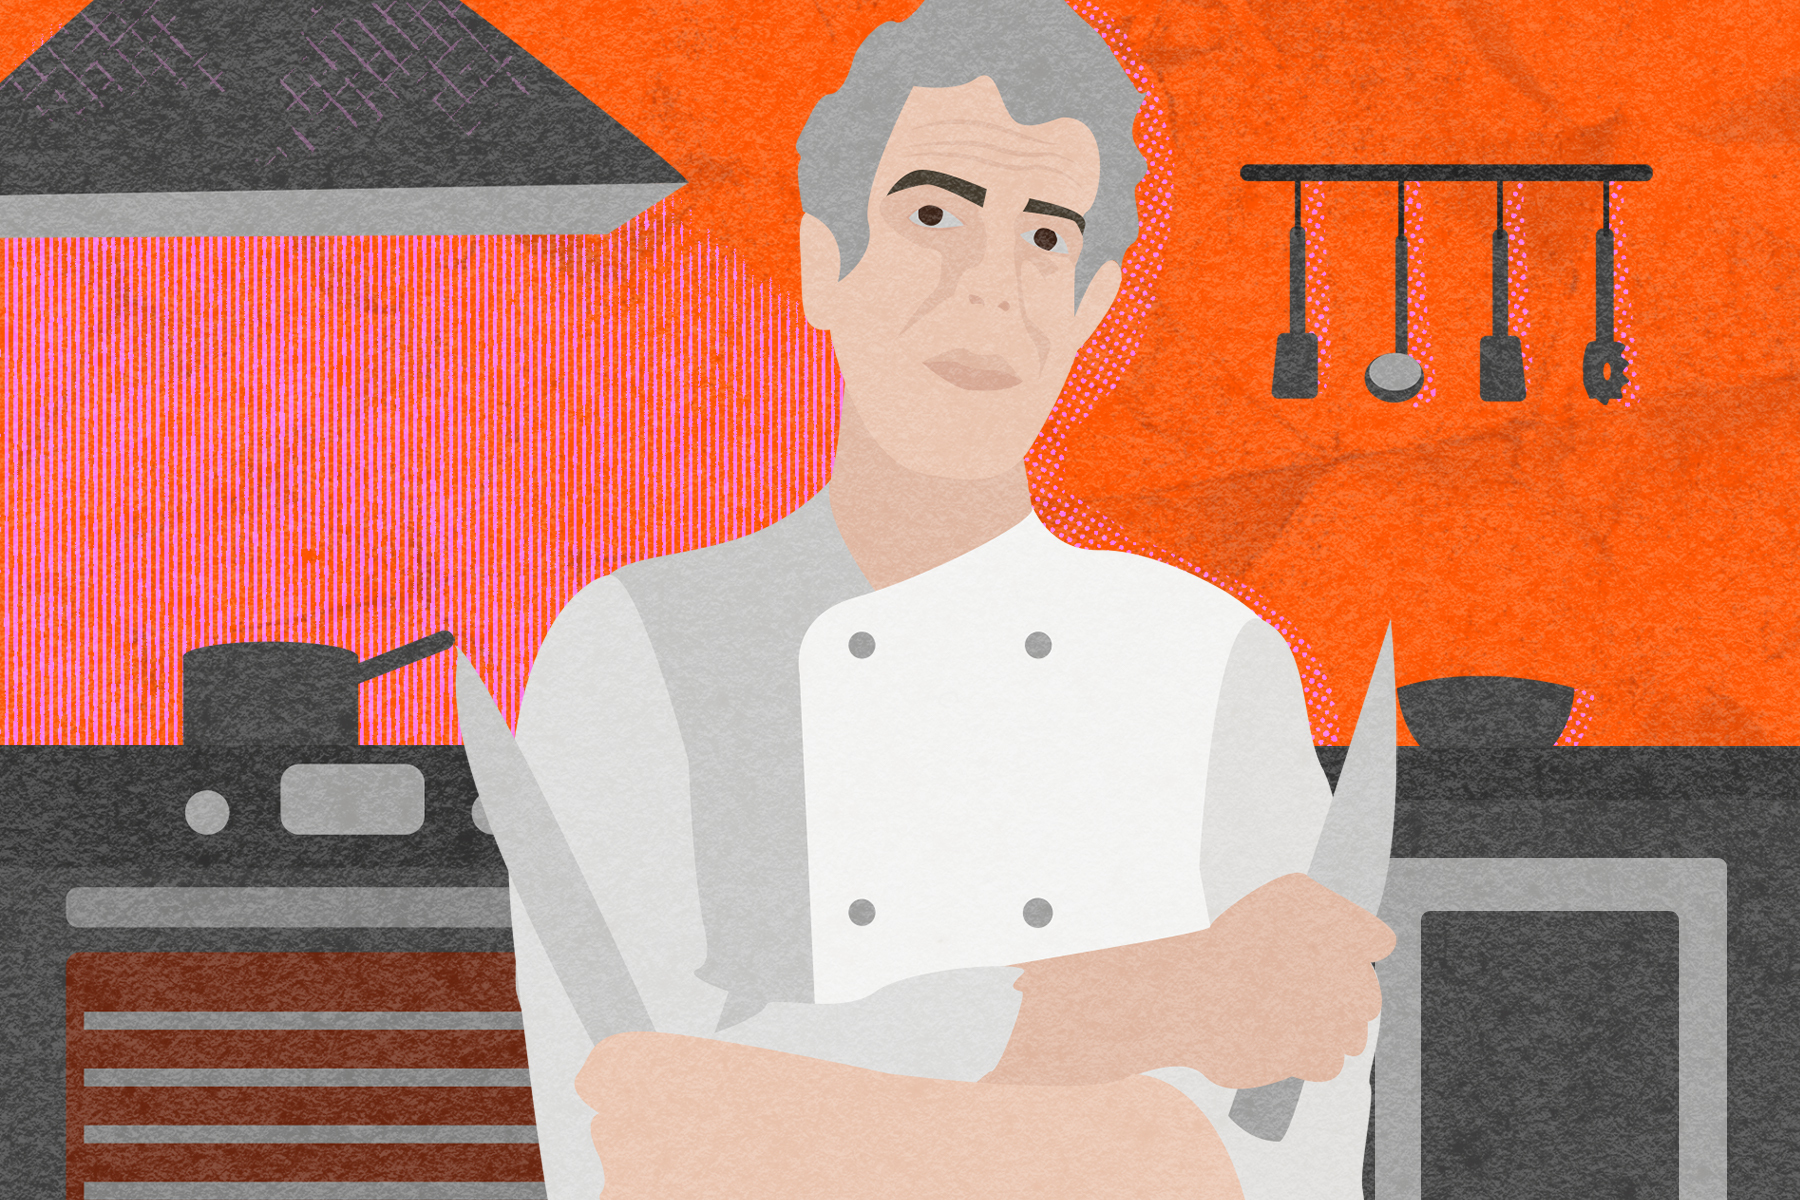 Illustration by Alicia Paauwe for an article on Anthony Bourdain